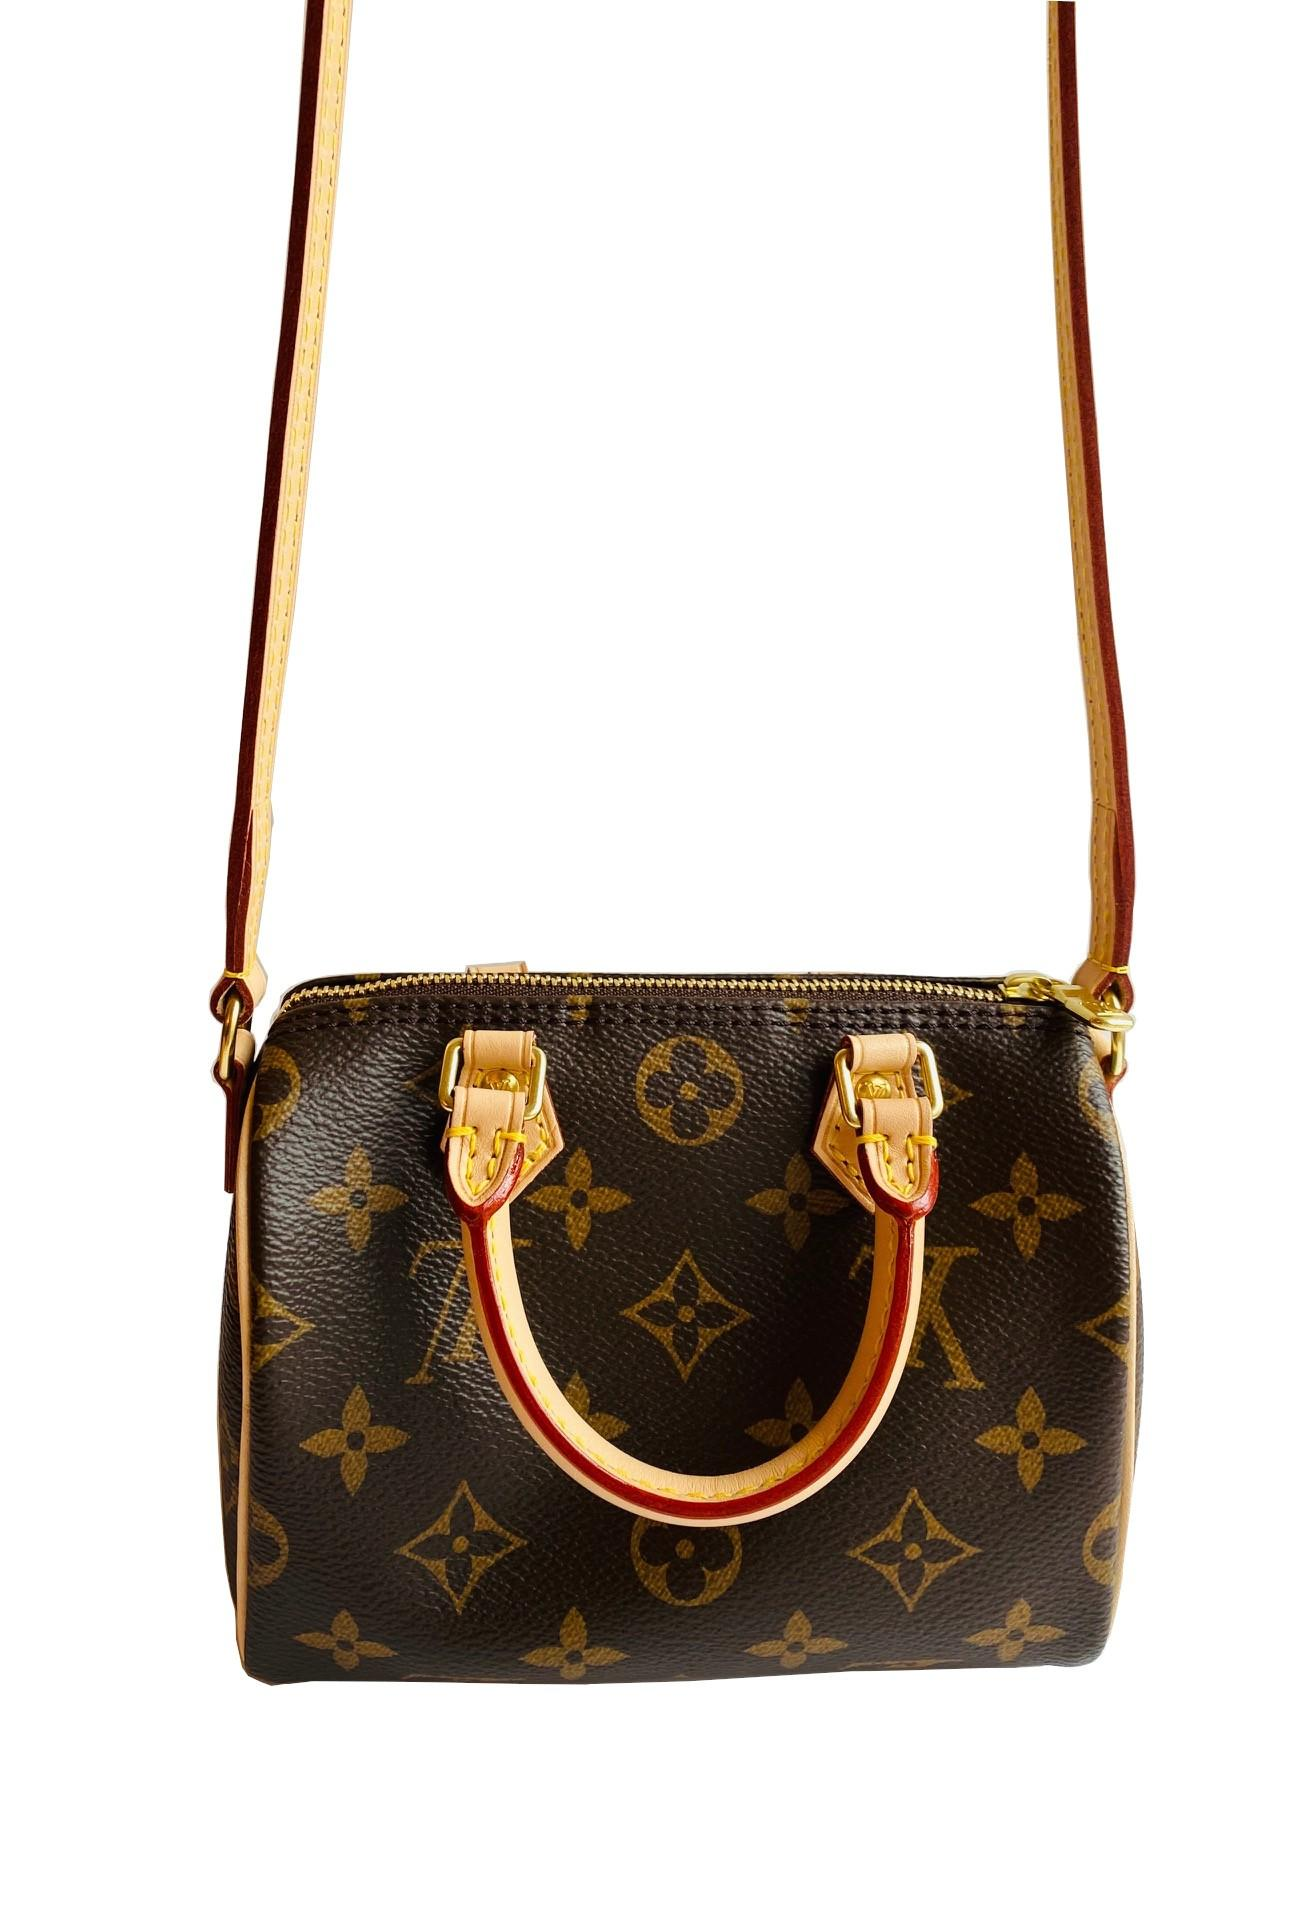 A Louis Vuitton Nano Speedy Monogram Canvas, as the name suggests the Nano Speedy is a miniature - Image 4 of 4